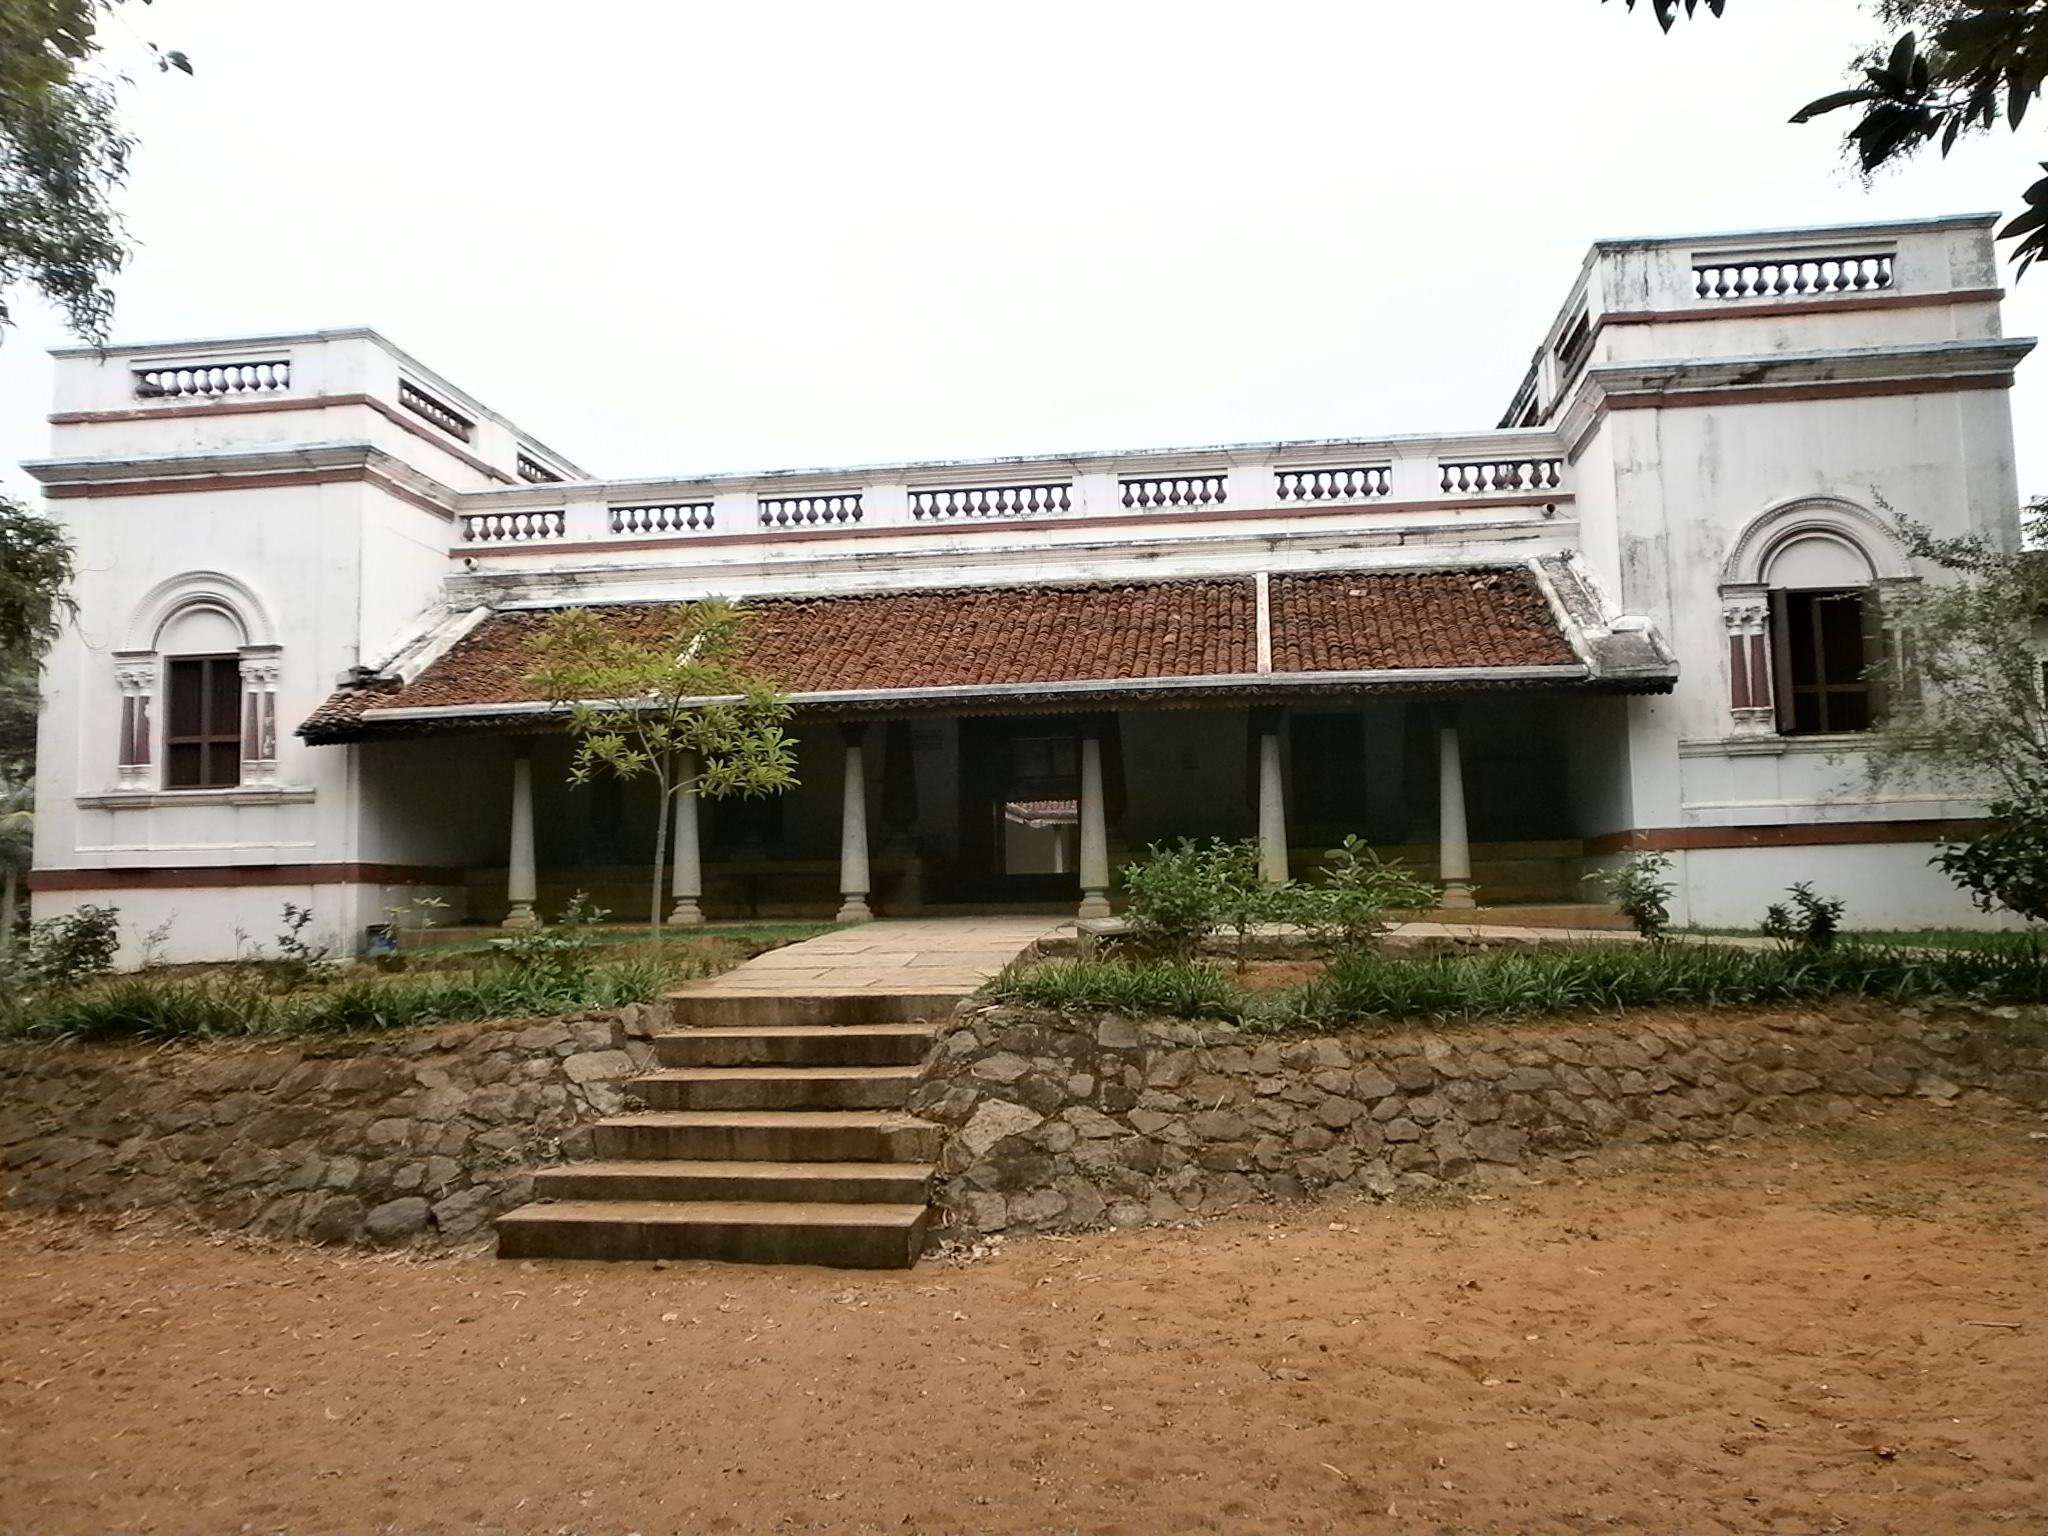 http://upload.wikimedia.org/wikipedia/commons/d/db/Dakshina-Chitra-Tamil-Nadu-House.JPG